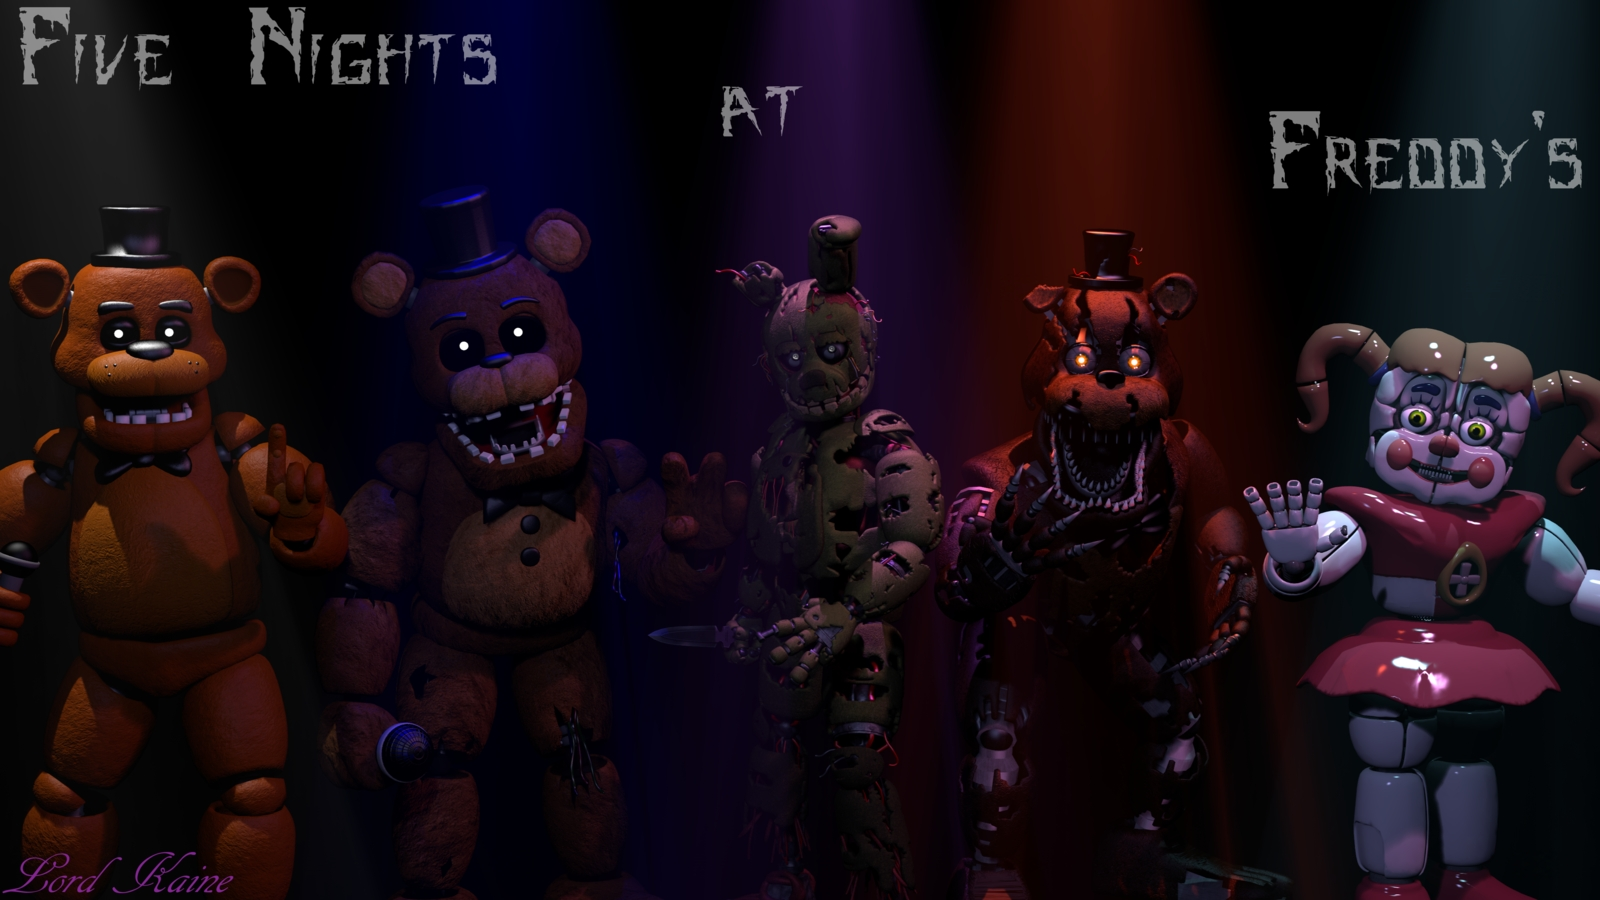 five nights at freddy's wallpaperlord-kaine on deviantart